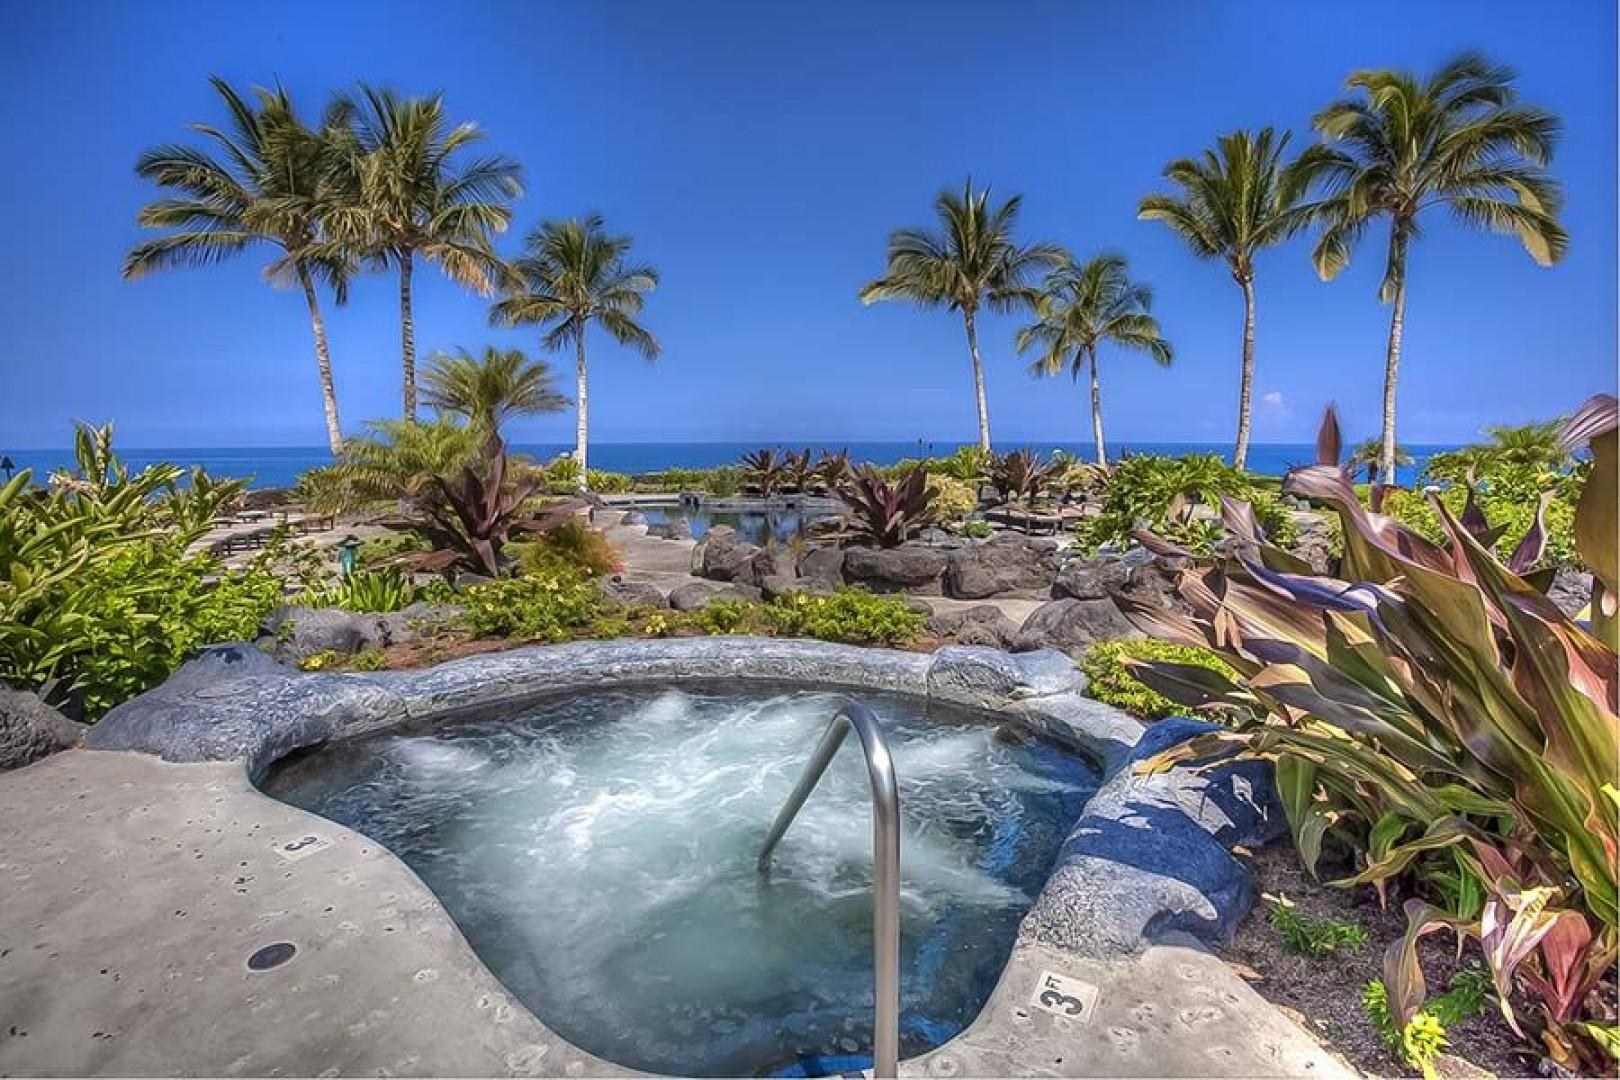 Soak in the oceanfront jacuzzi while sipping on a Mai Tai